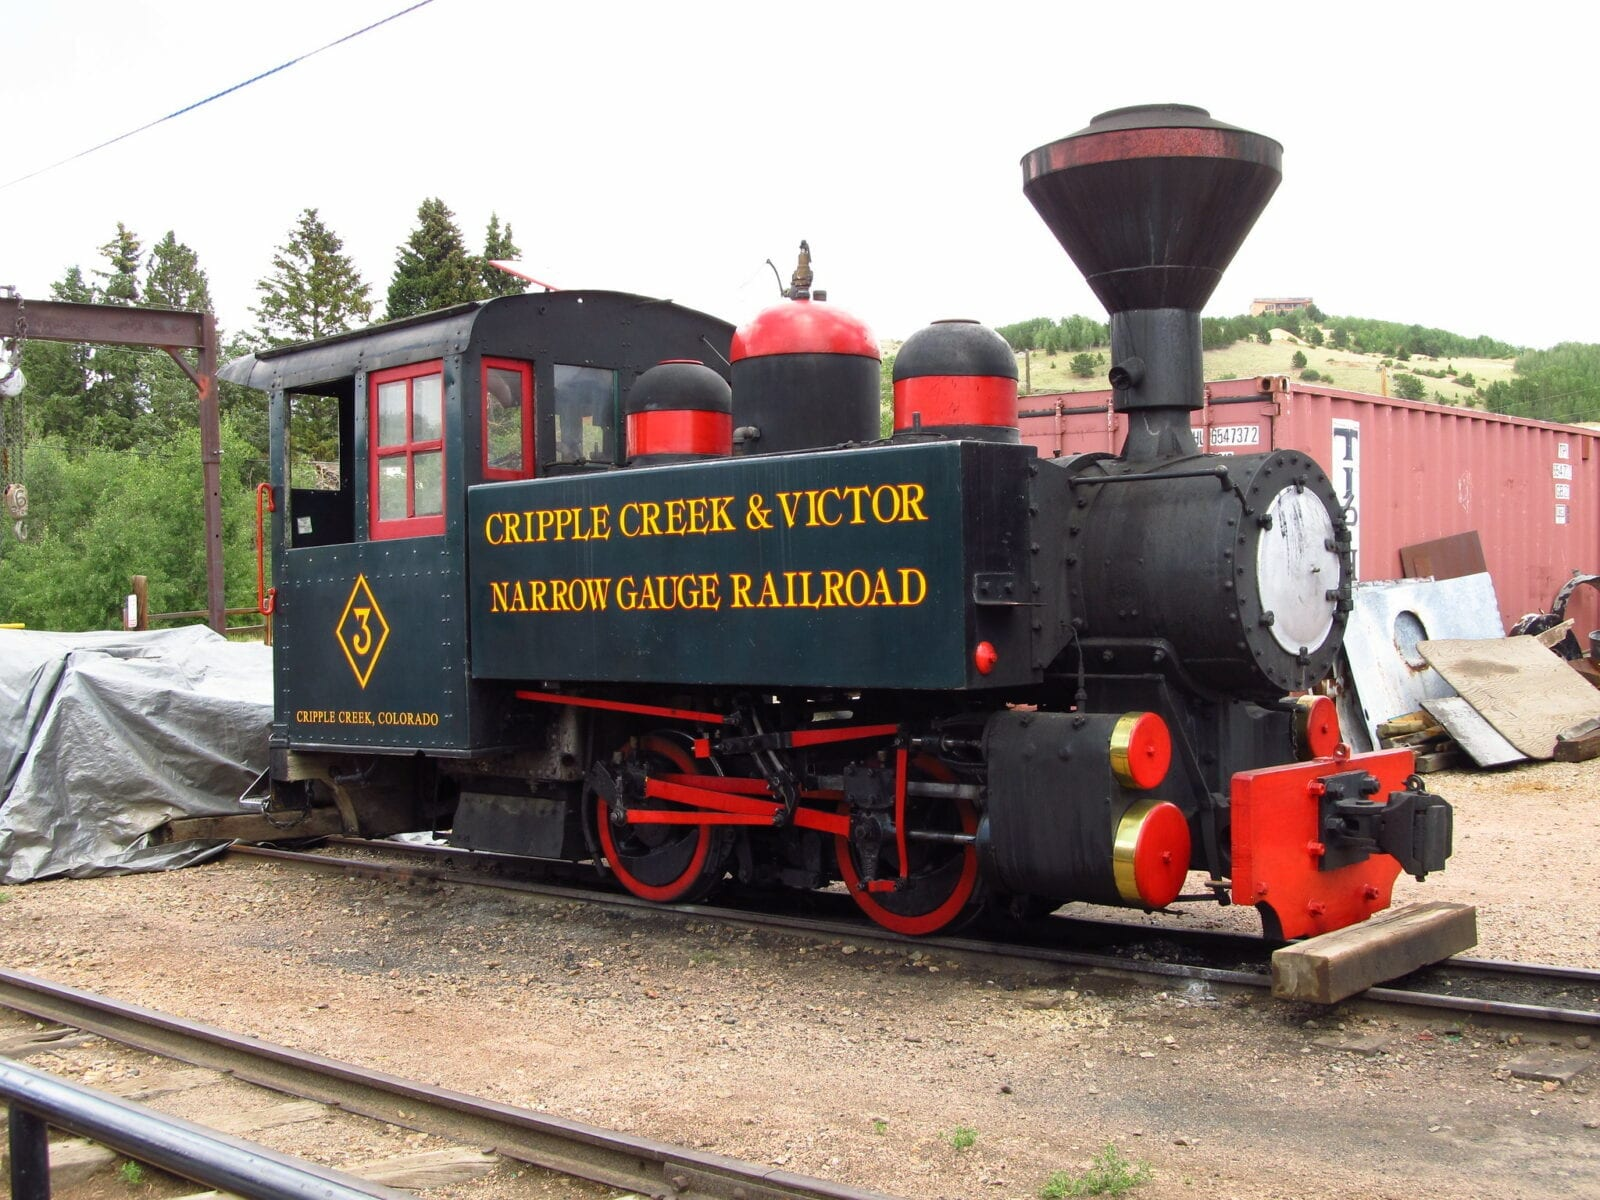 image of cripple creek train